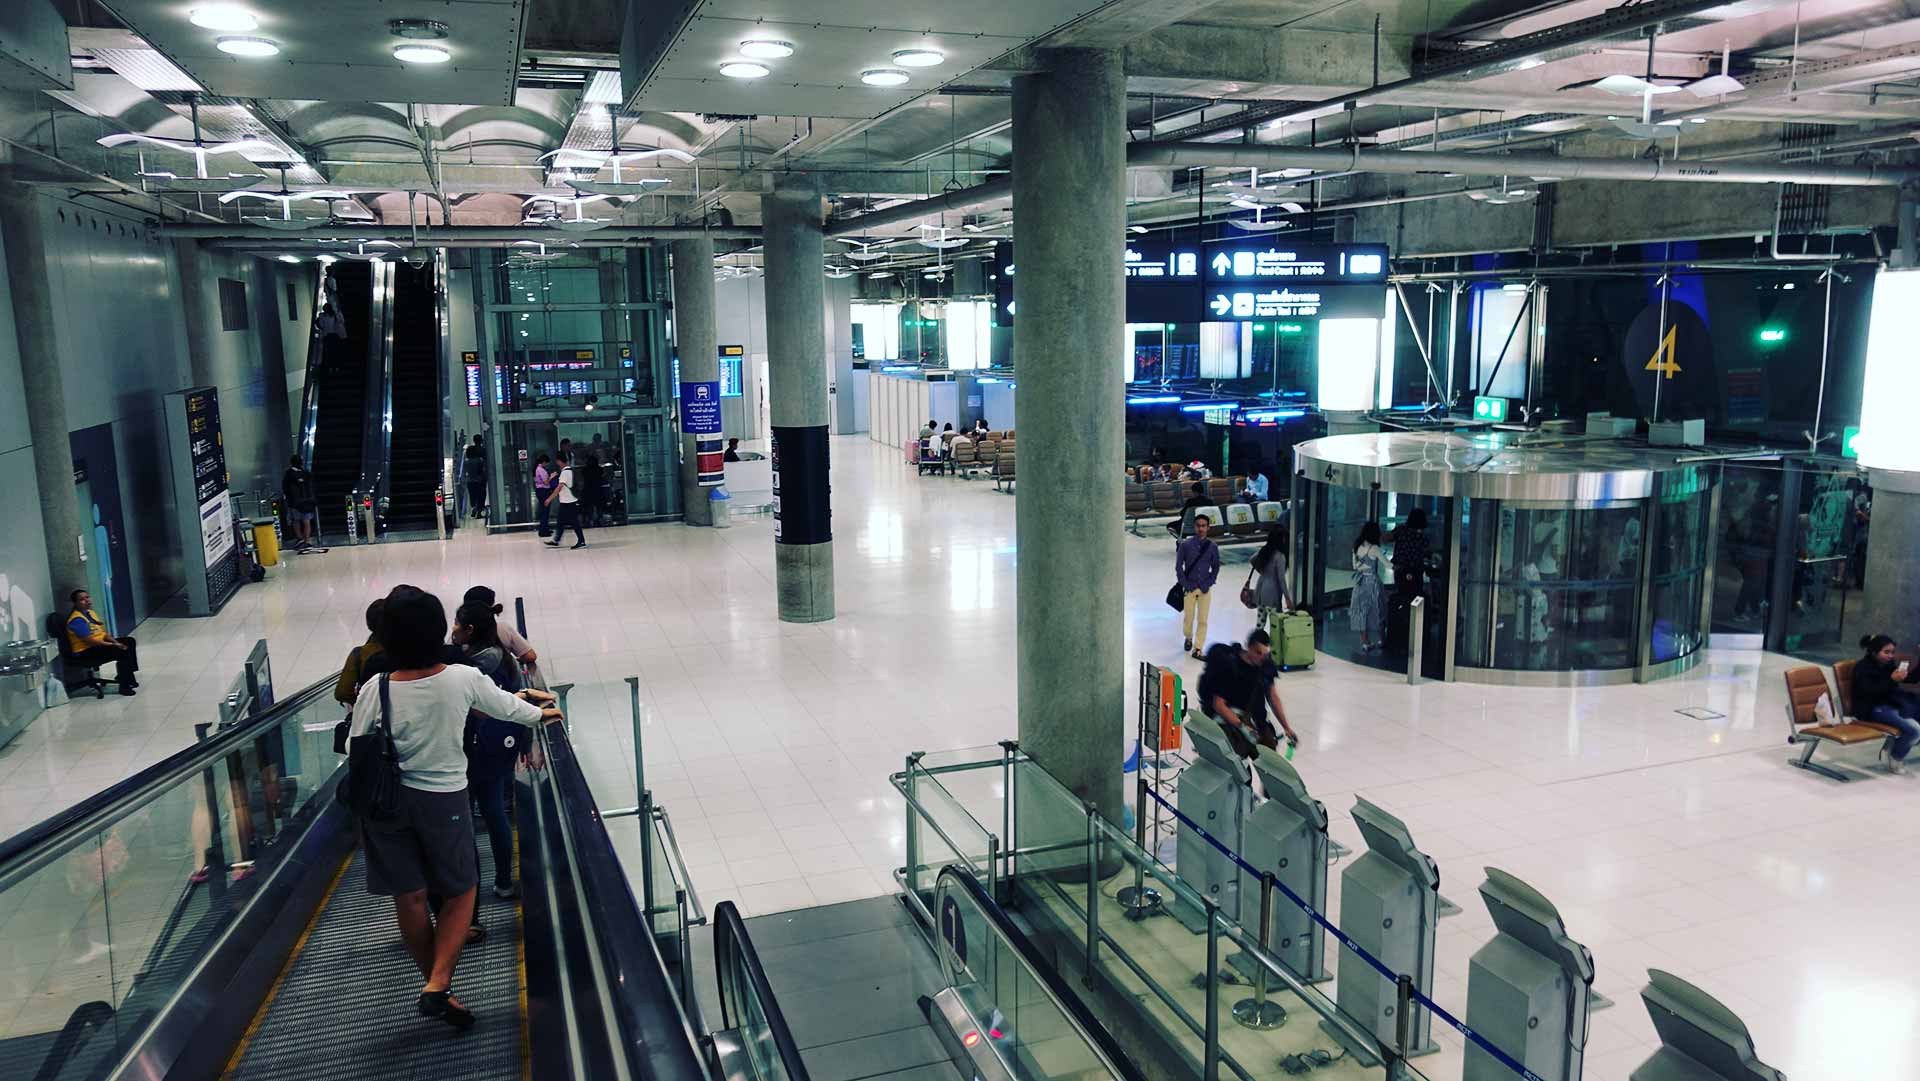 How to Get to Pattaya from Suvarnabhumi Airport for 120 Baht - Go Down to Level 1 and Look for Door 8 - Thailand